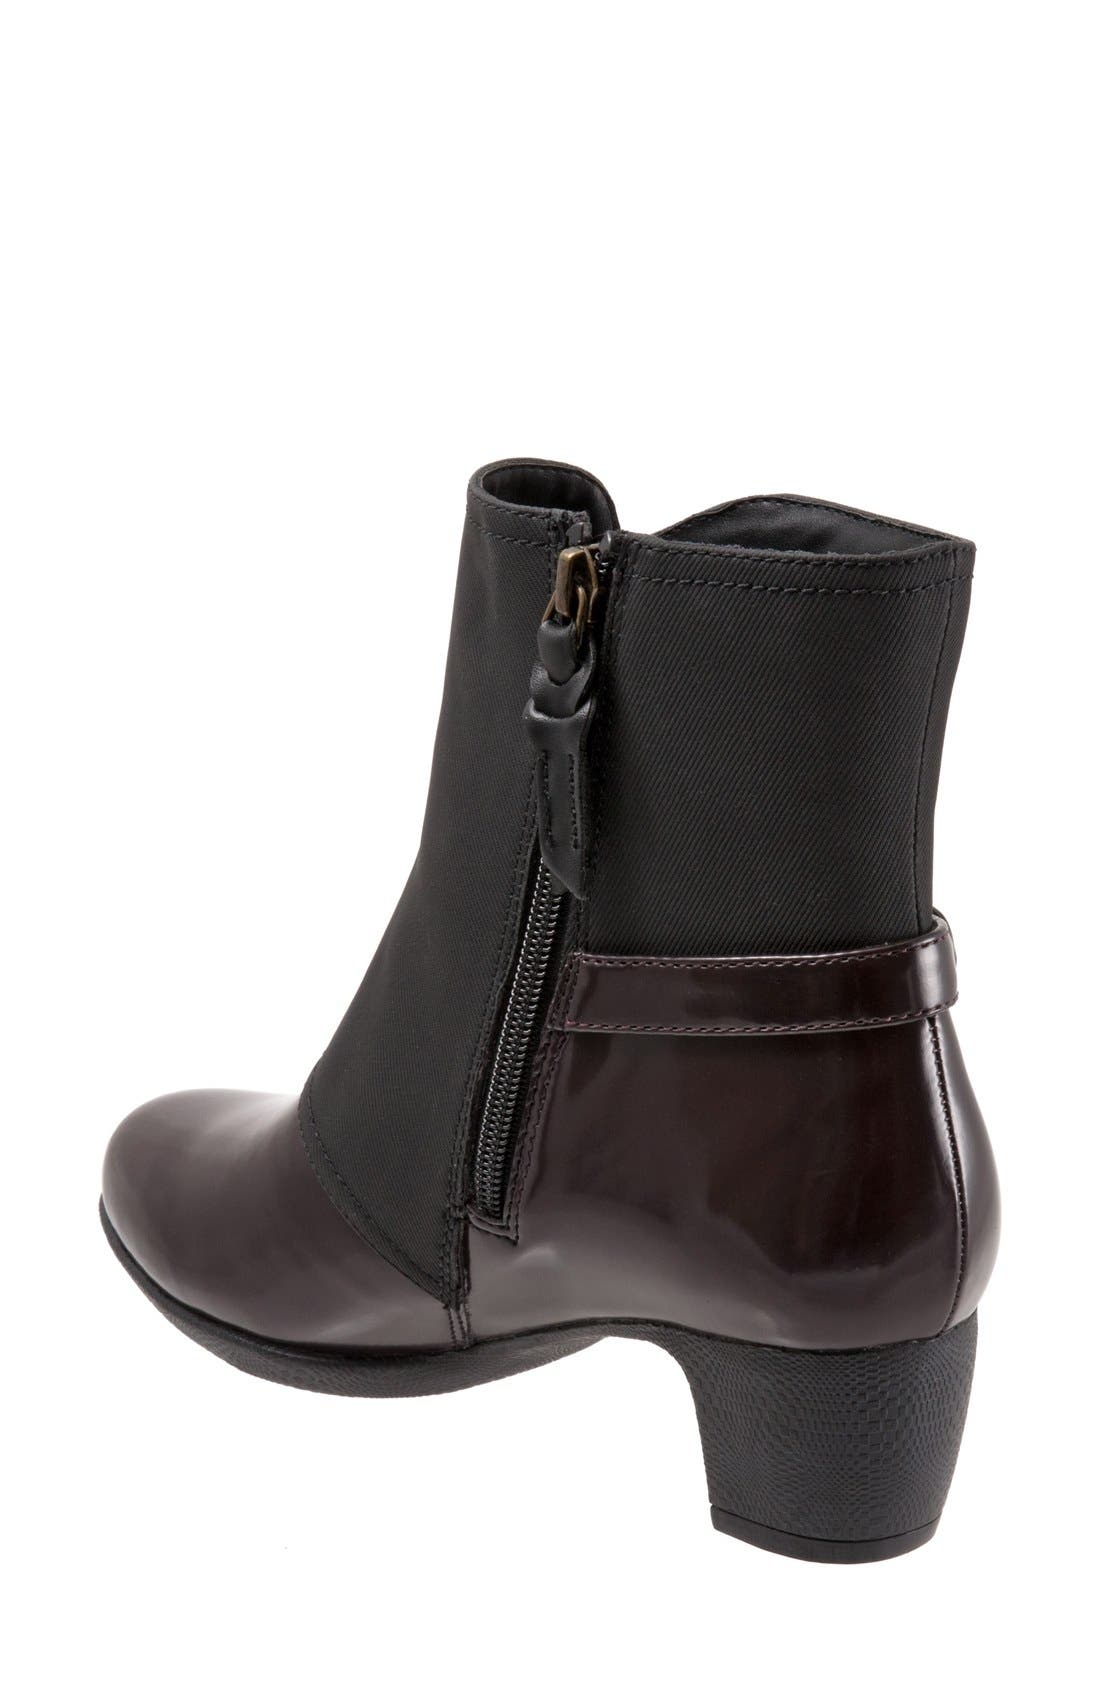 'Puddles' Waterproof Bootie,                             Alternate thumbnail 2, color,                             642